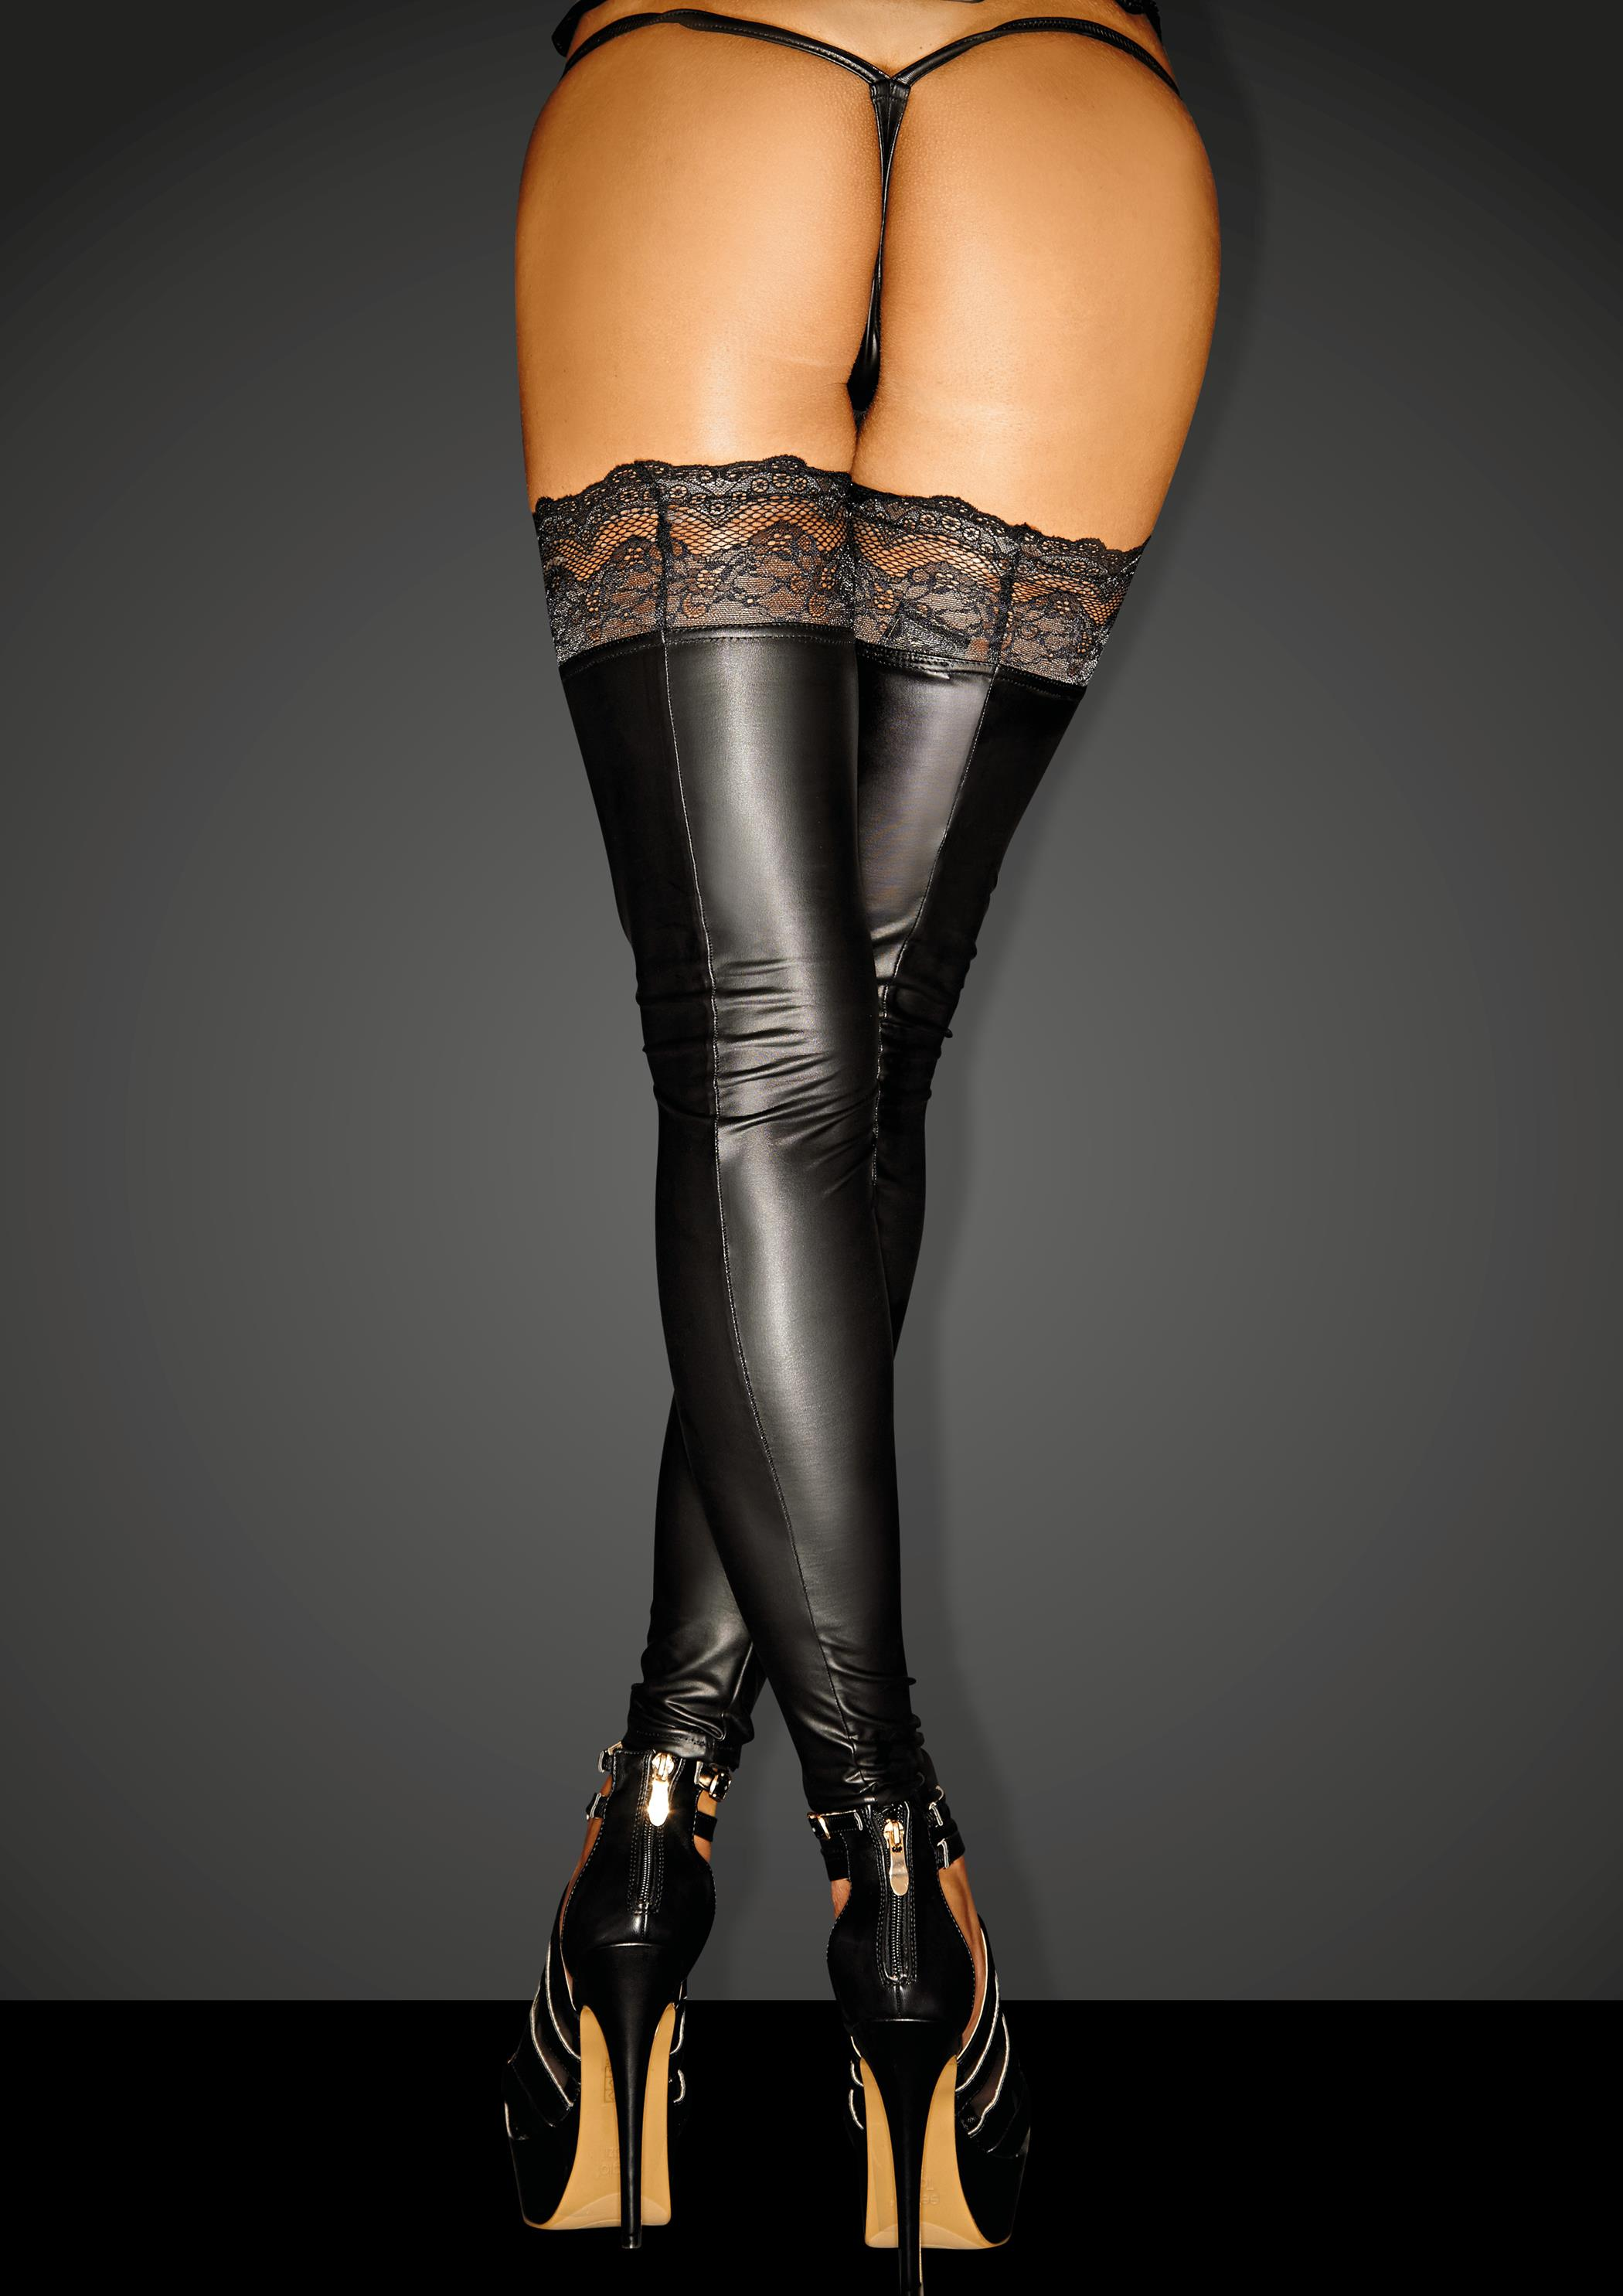 F135 Powerwetlook Stockings mit Spitze SUPERSTAR